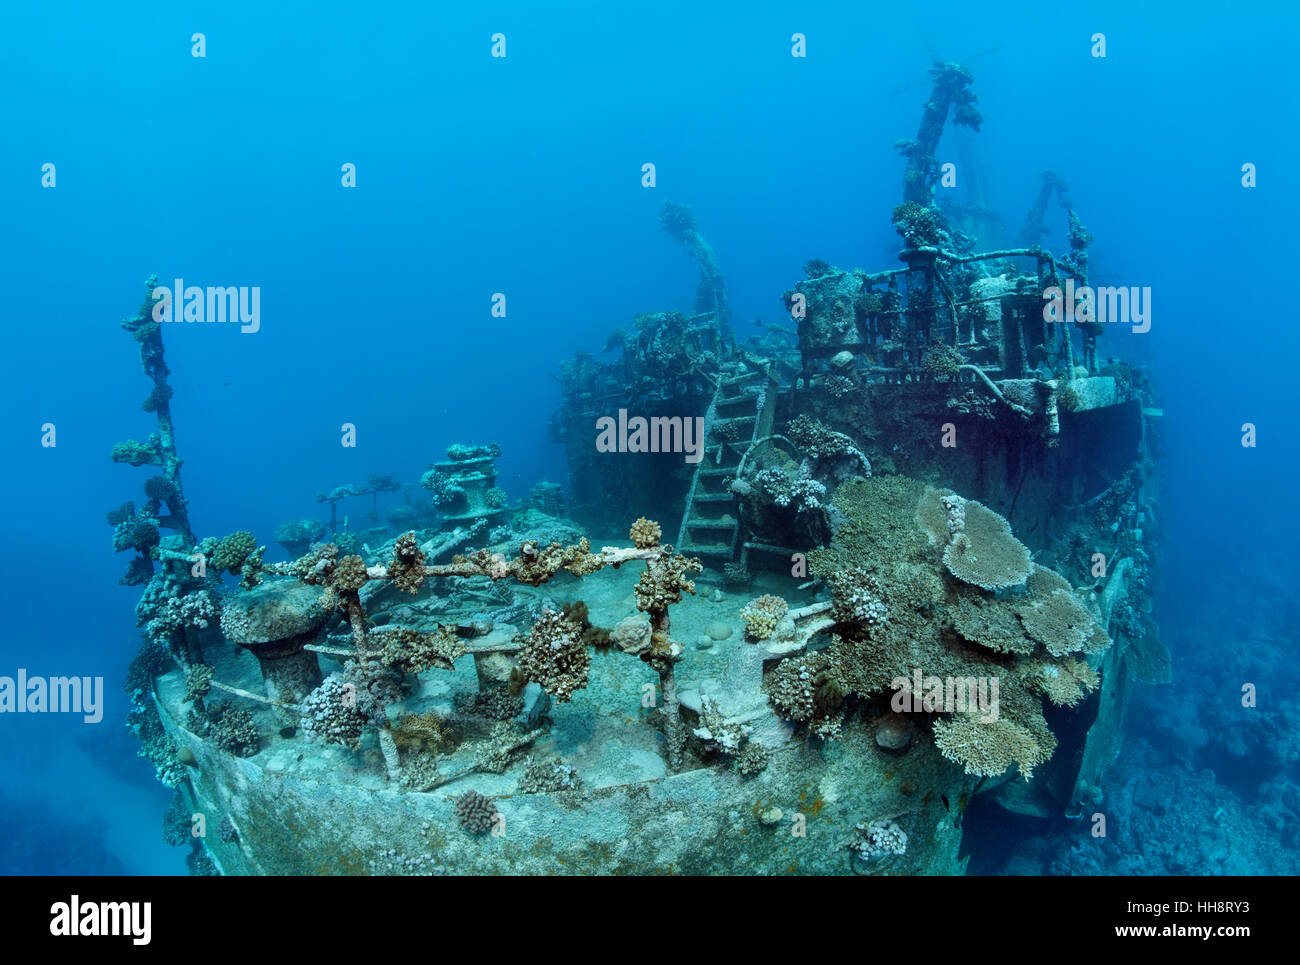 Stern of ship wreck, Russian wreck MS Khanka, former spy ship or communications ship, Zabargad Island, Red Sea, - Stock Image